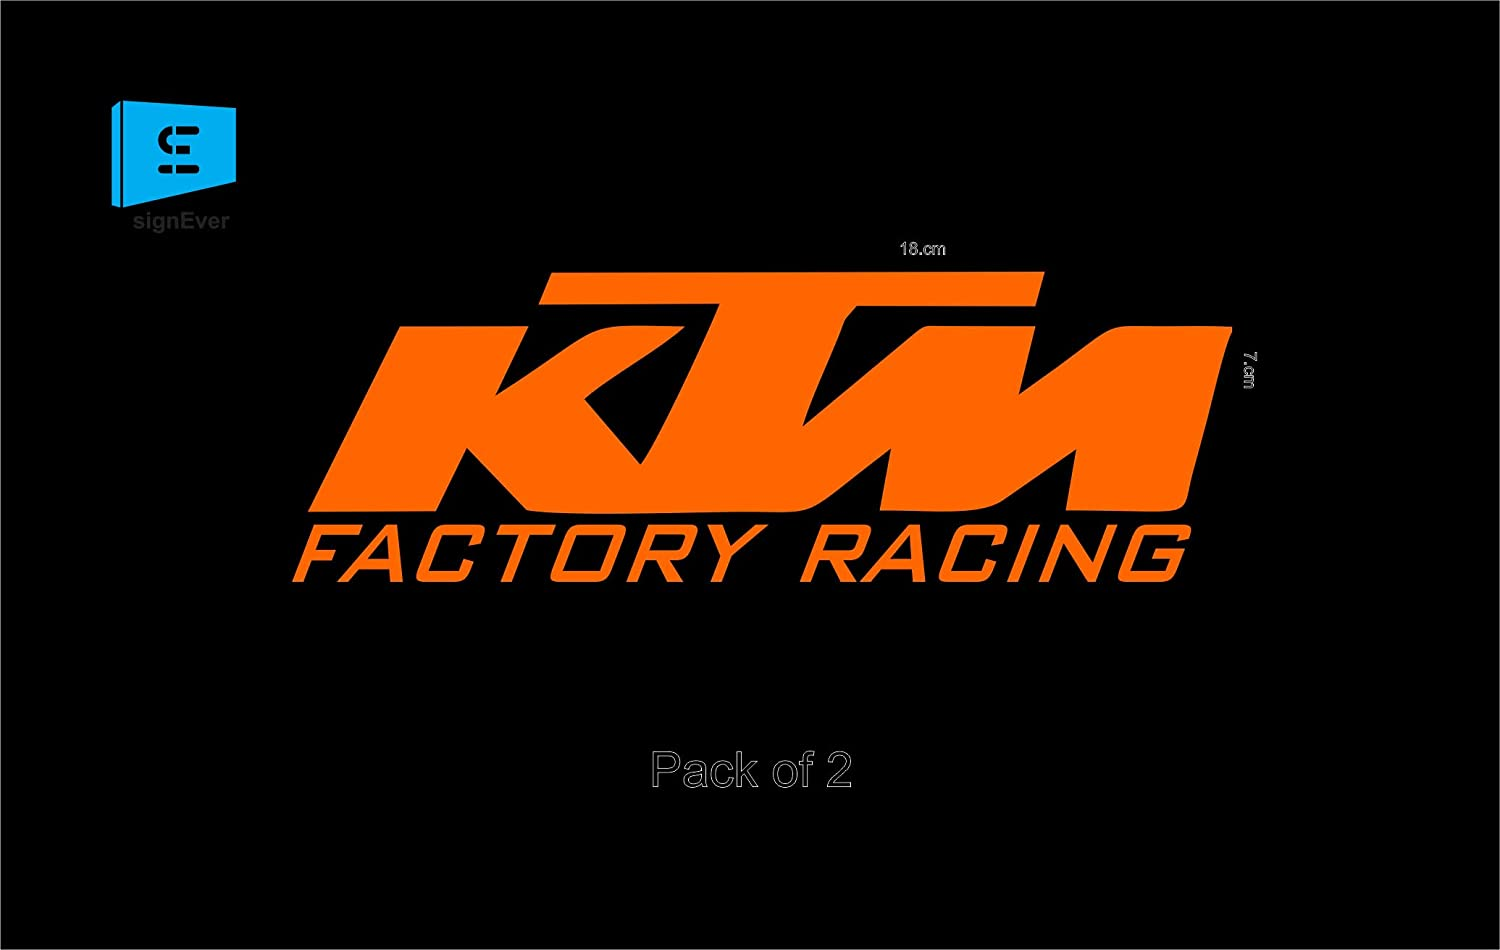 Sign ever duke ktm stickers for bike 390 200 250 factory racing orange decals l x h 18 x 7 cms pack of 2 amazon in car motorbike